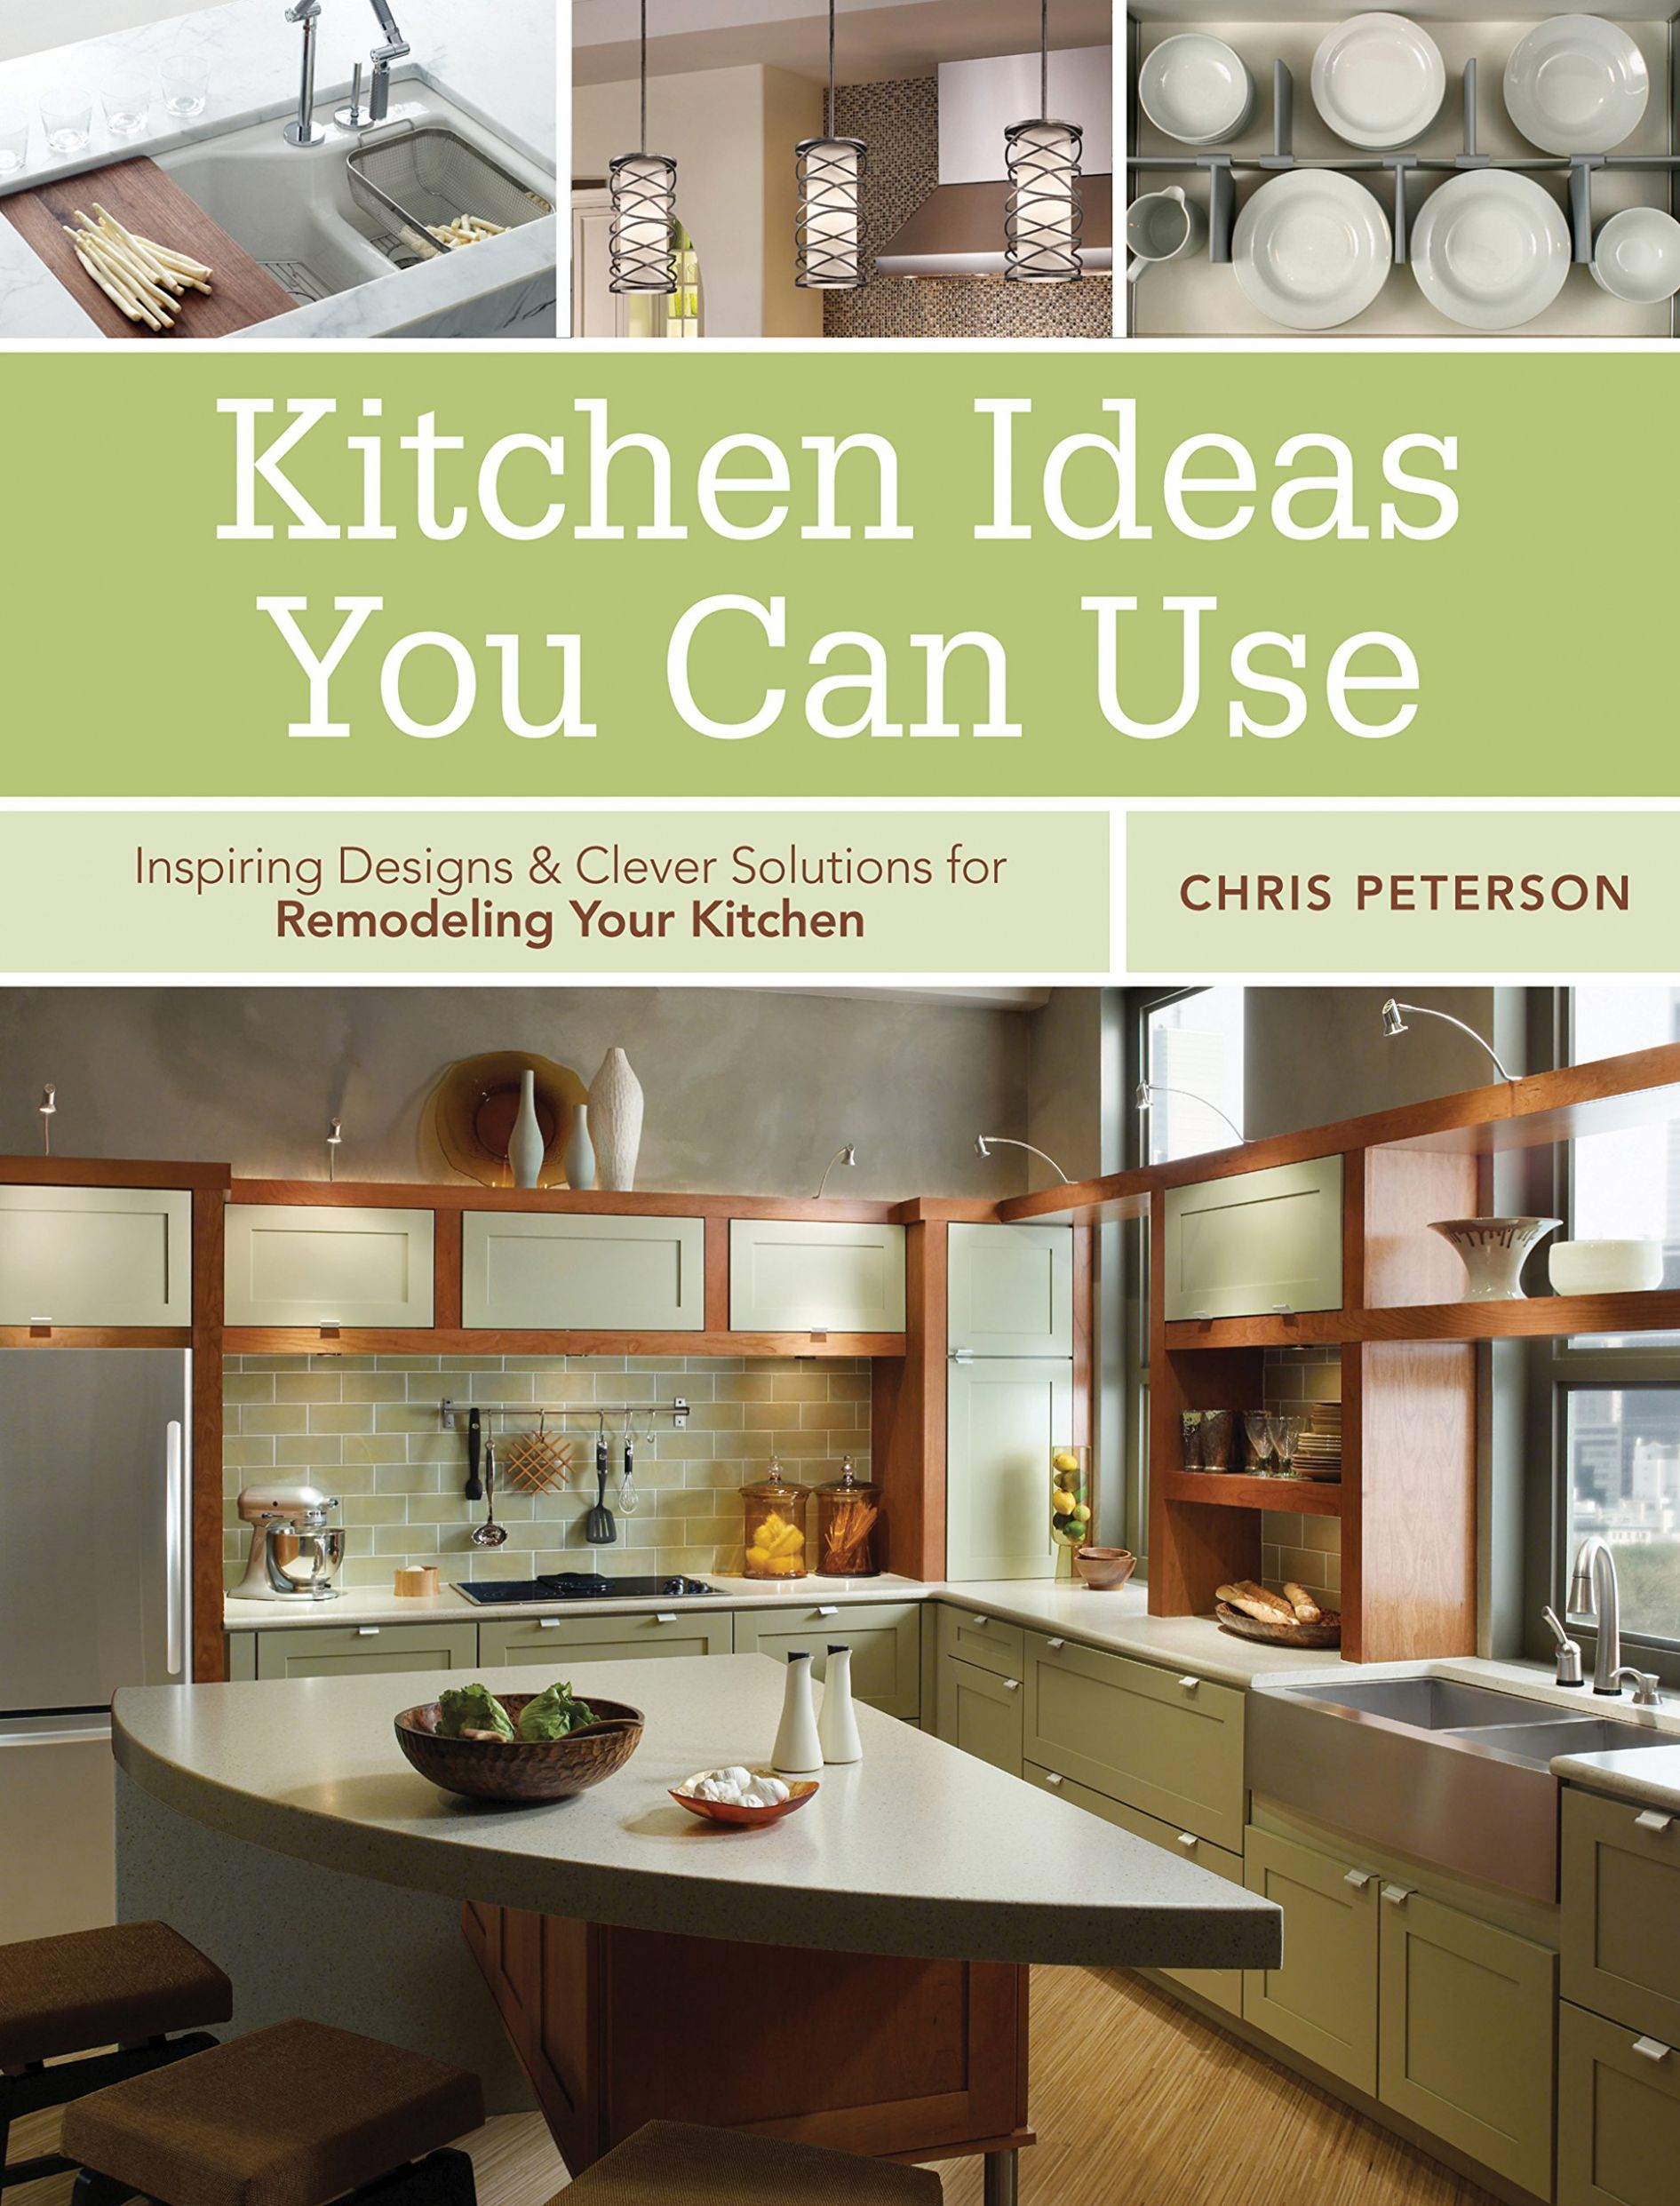 Kitchen Ideas You Can Use: Inspiring Designs & Clever Solutions ..